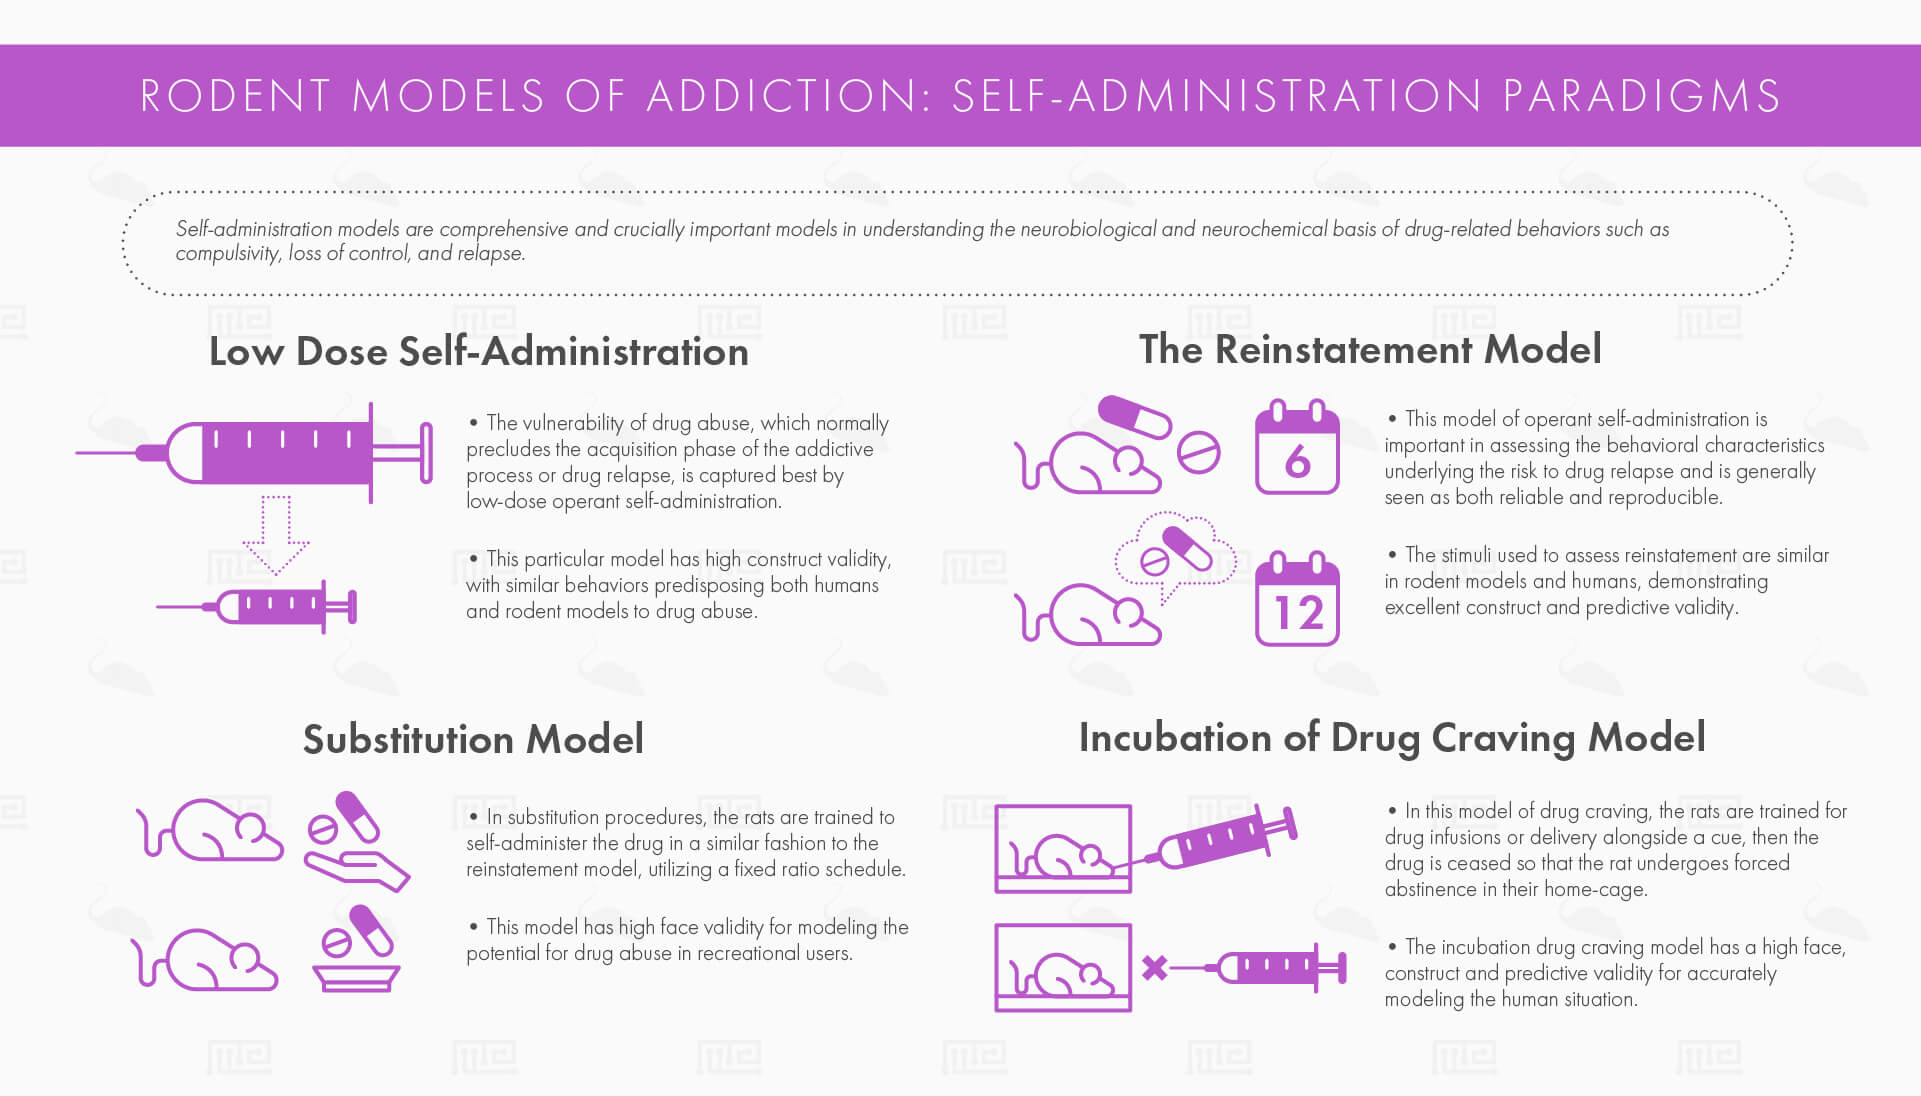 rodent models of addiction